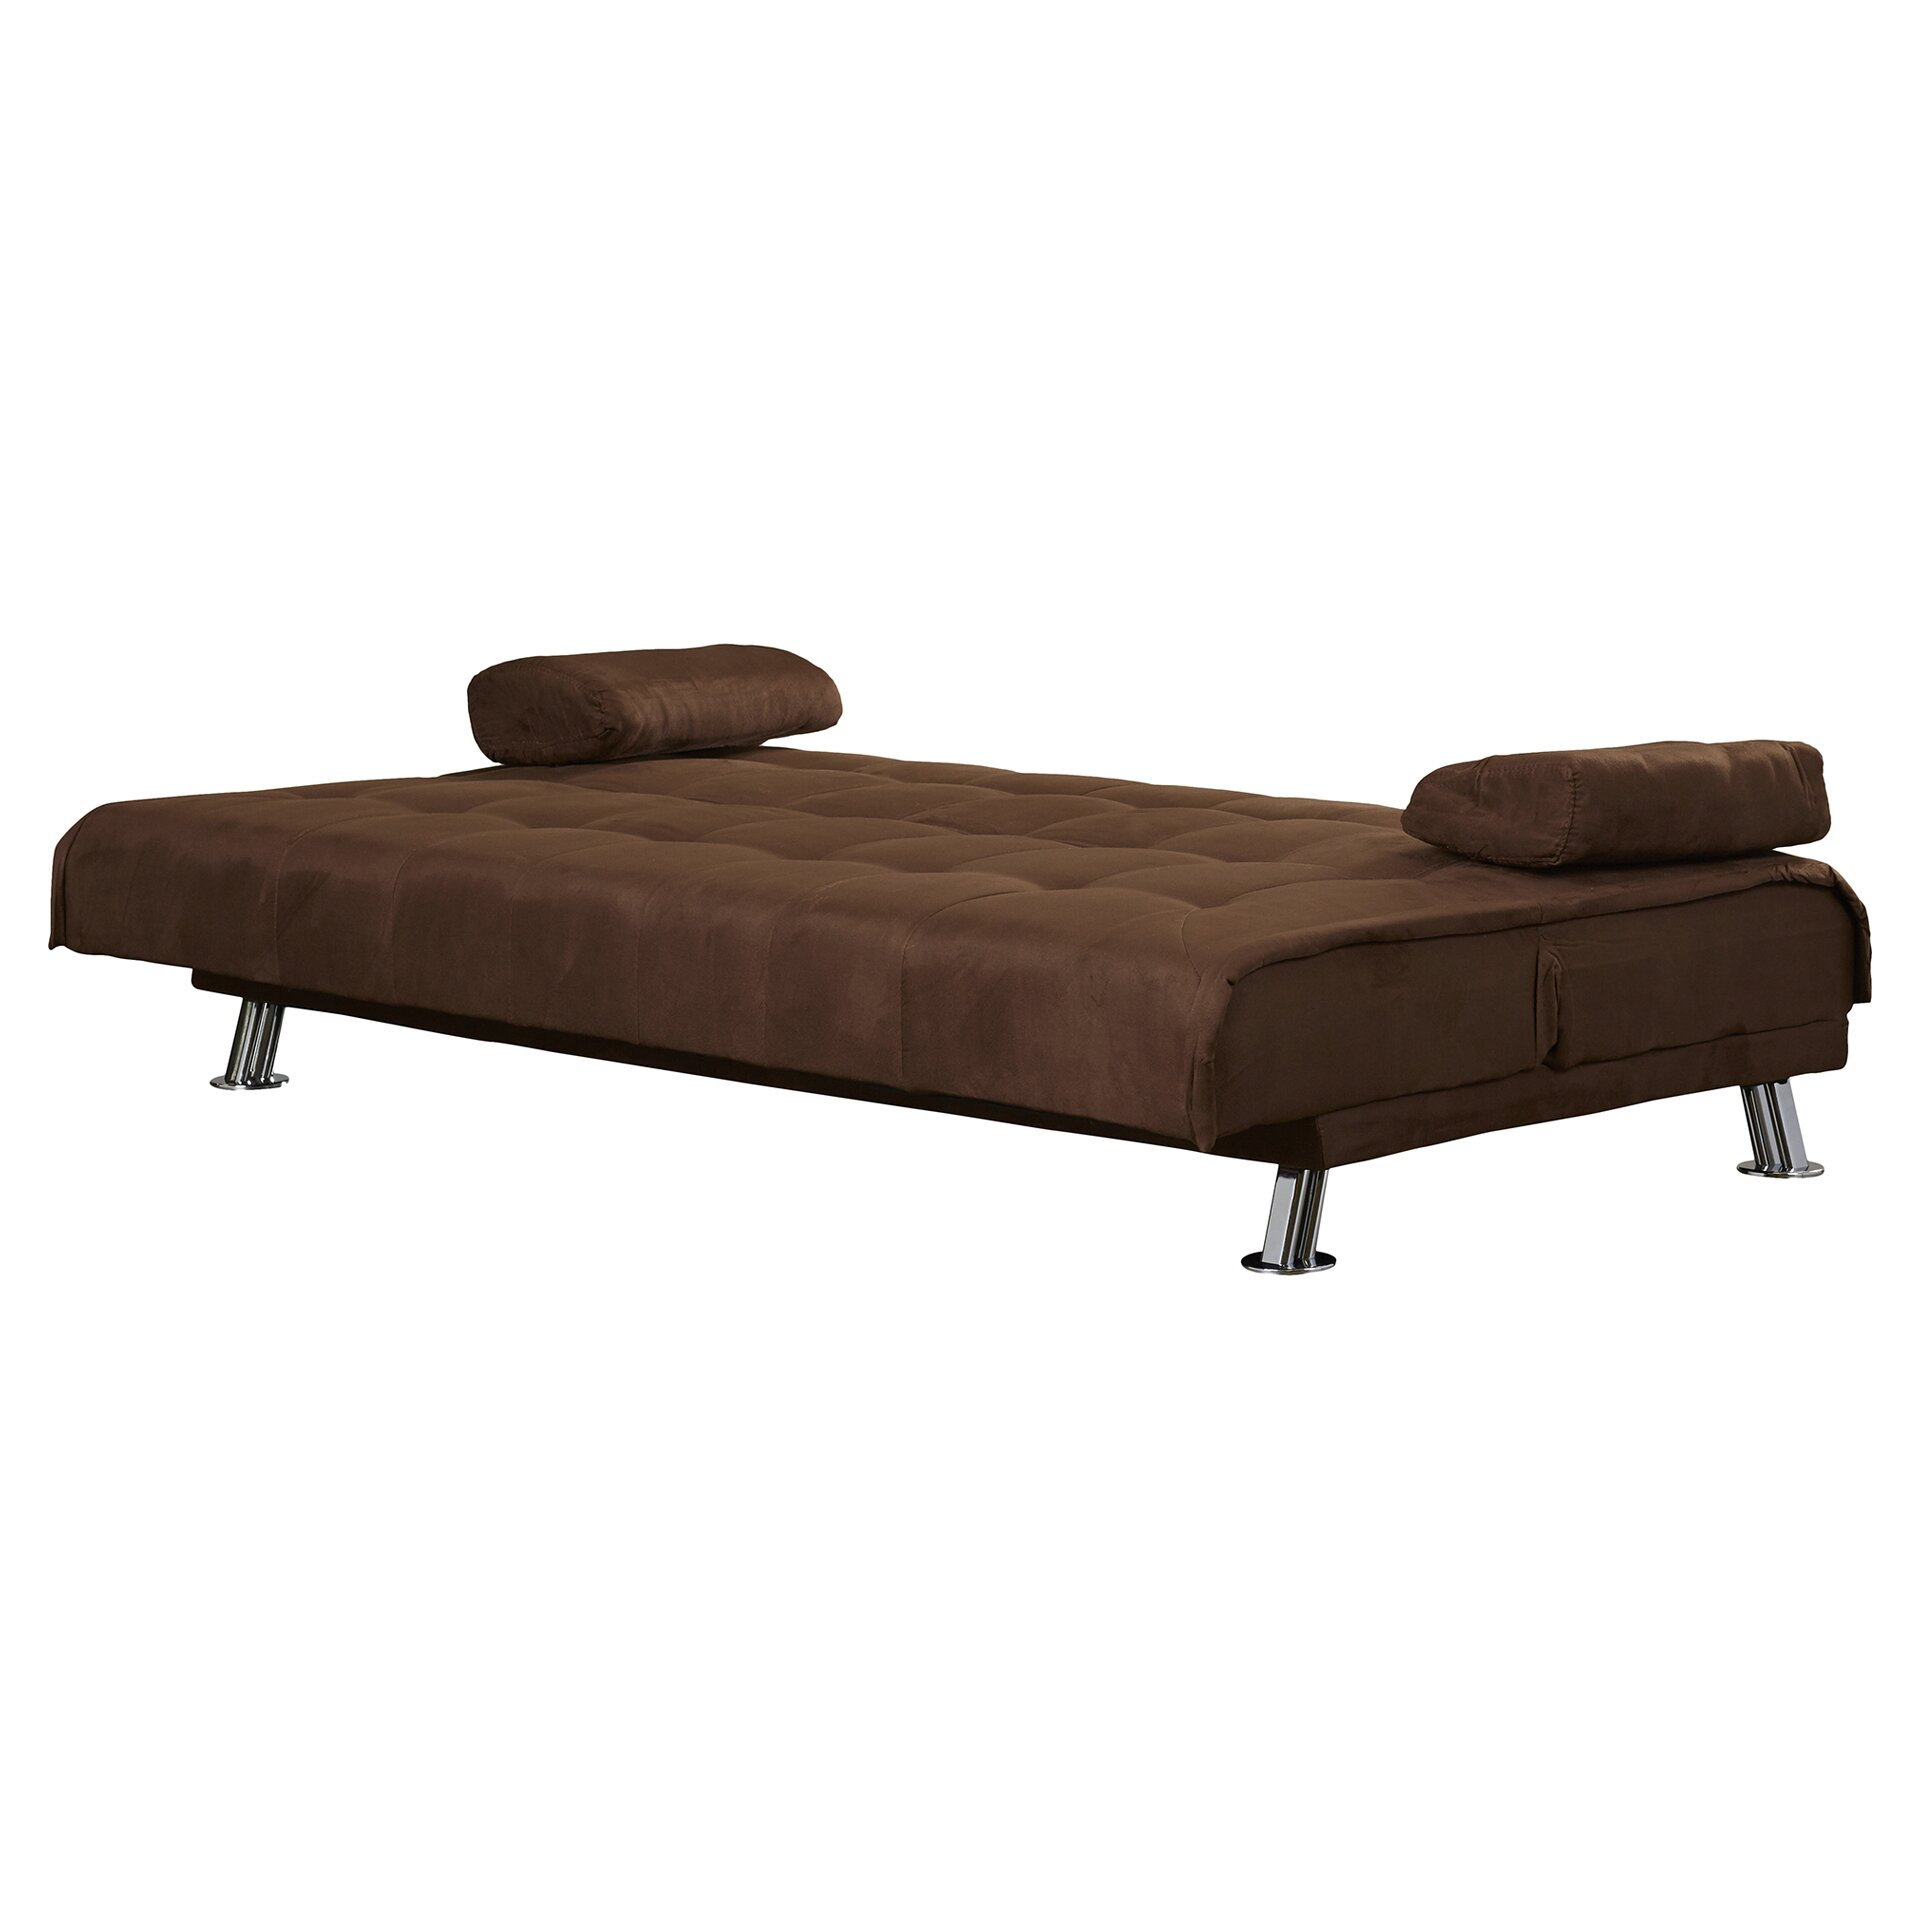 Dillards Sofas: Dillards Furniture Sofa Sleepers Dillards Furniture